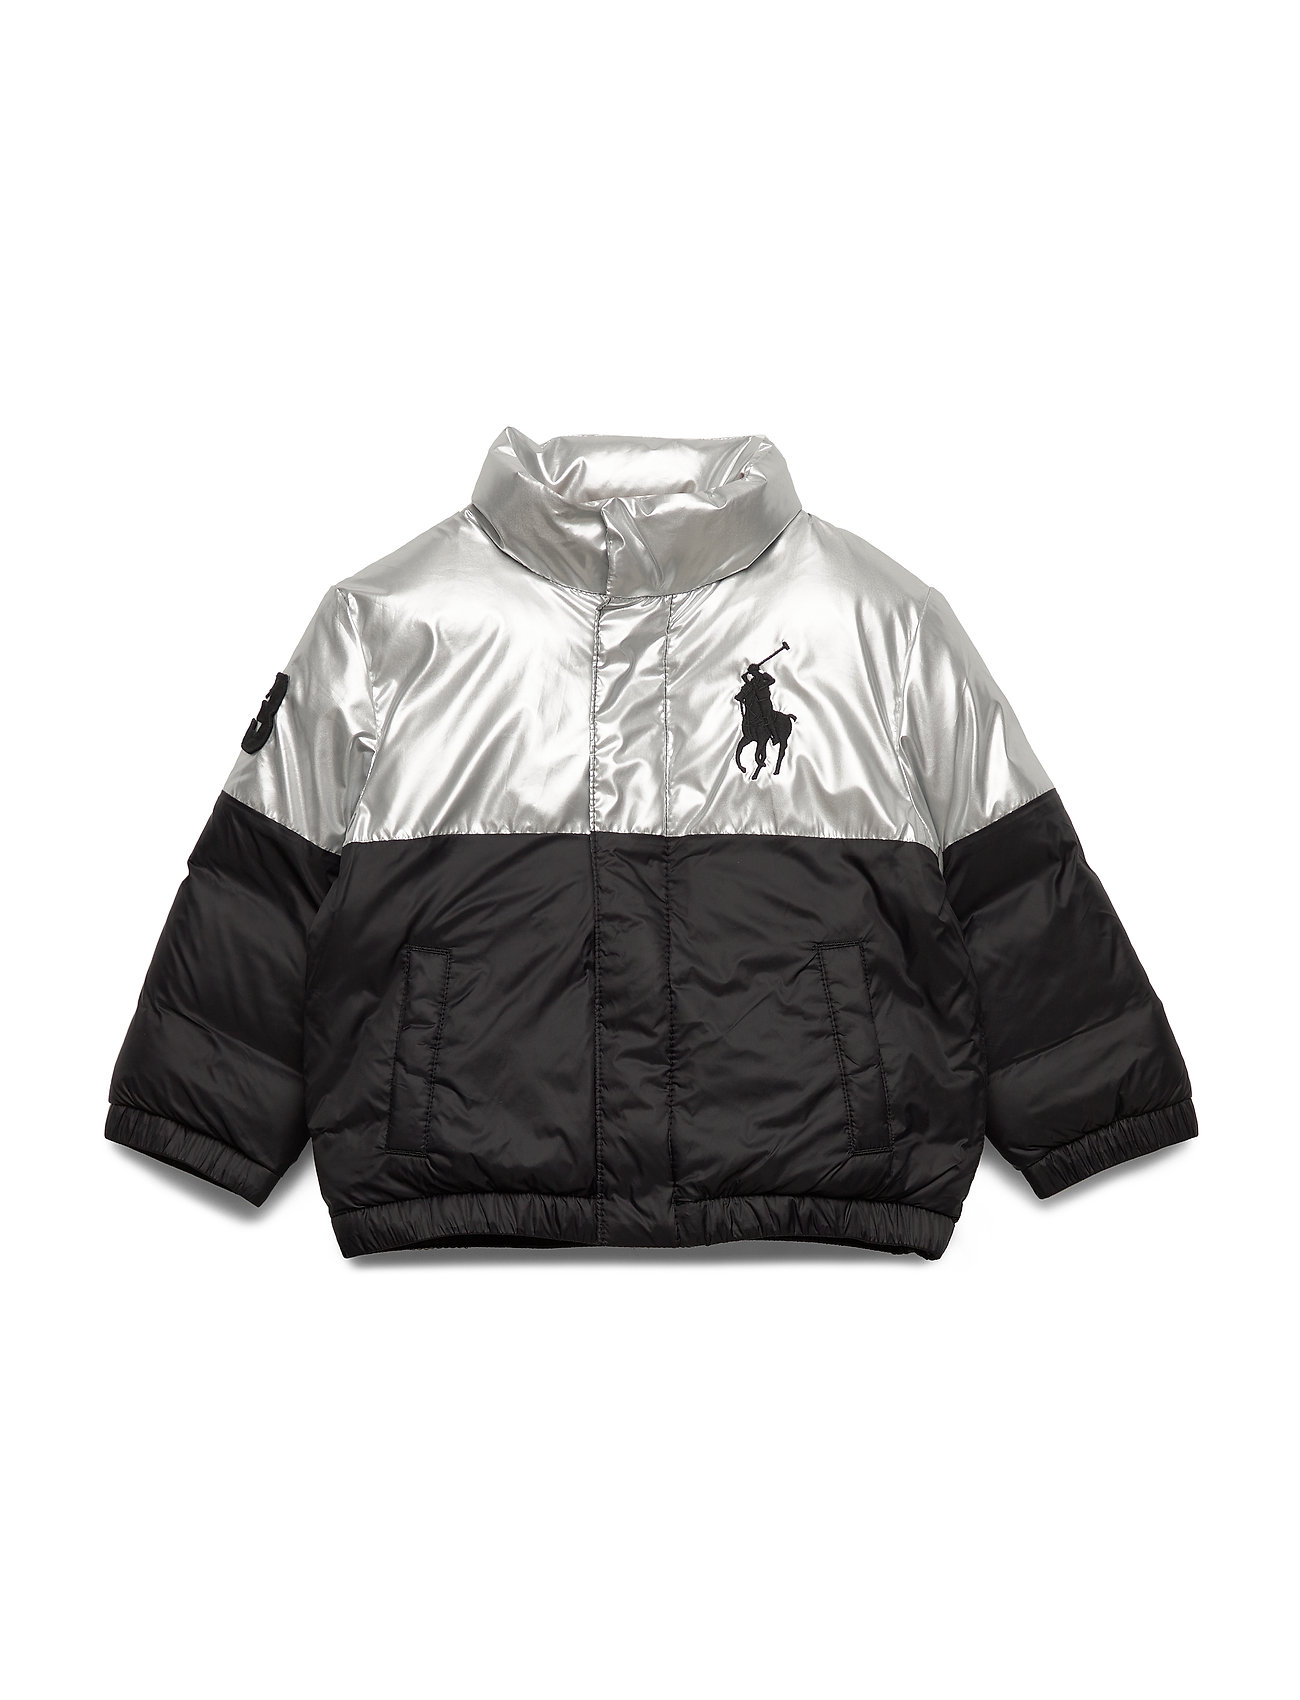 Ralph Lauren Kids Polo Bear Foil Down Jacket - SILVER / BLACK